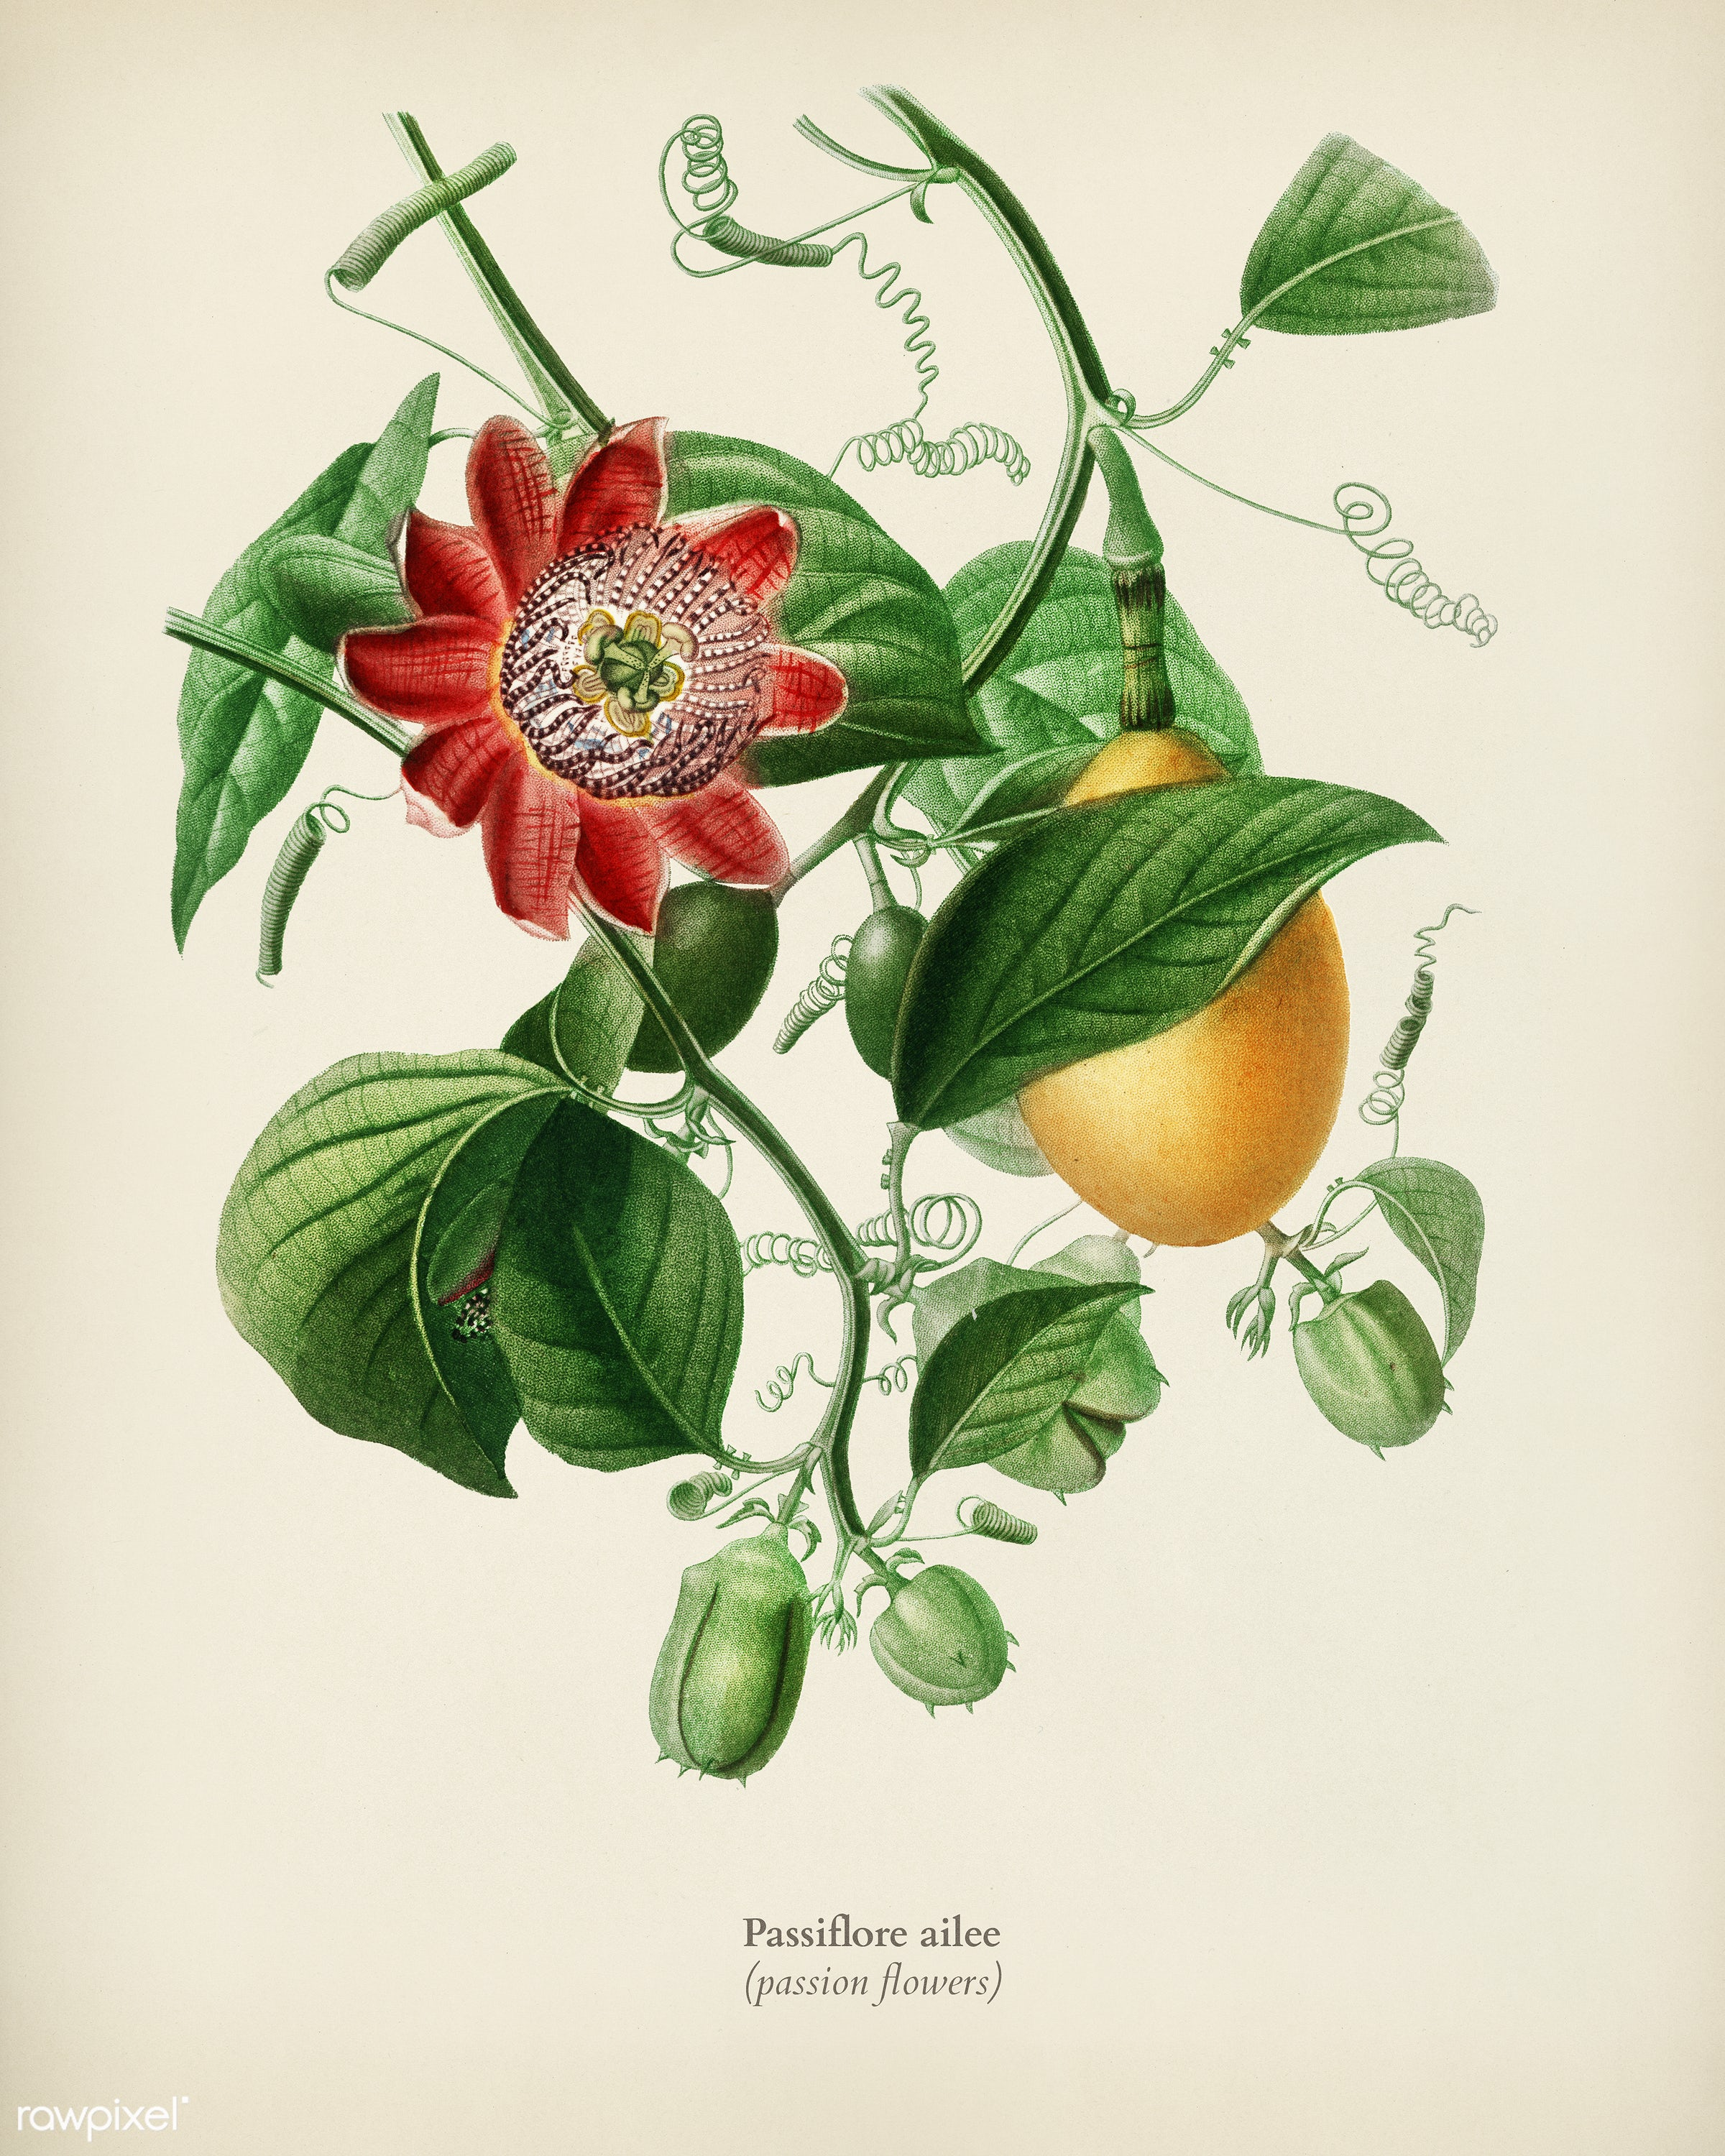 Passiflore ailee illustrated by Charles Dessalines D' Orbigny (1806-1876). Digitally enhanced from our own 1892 edition...